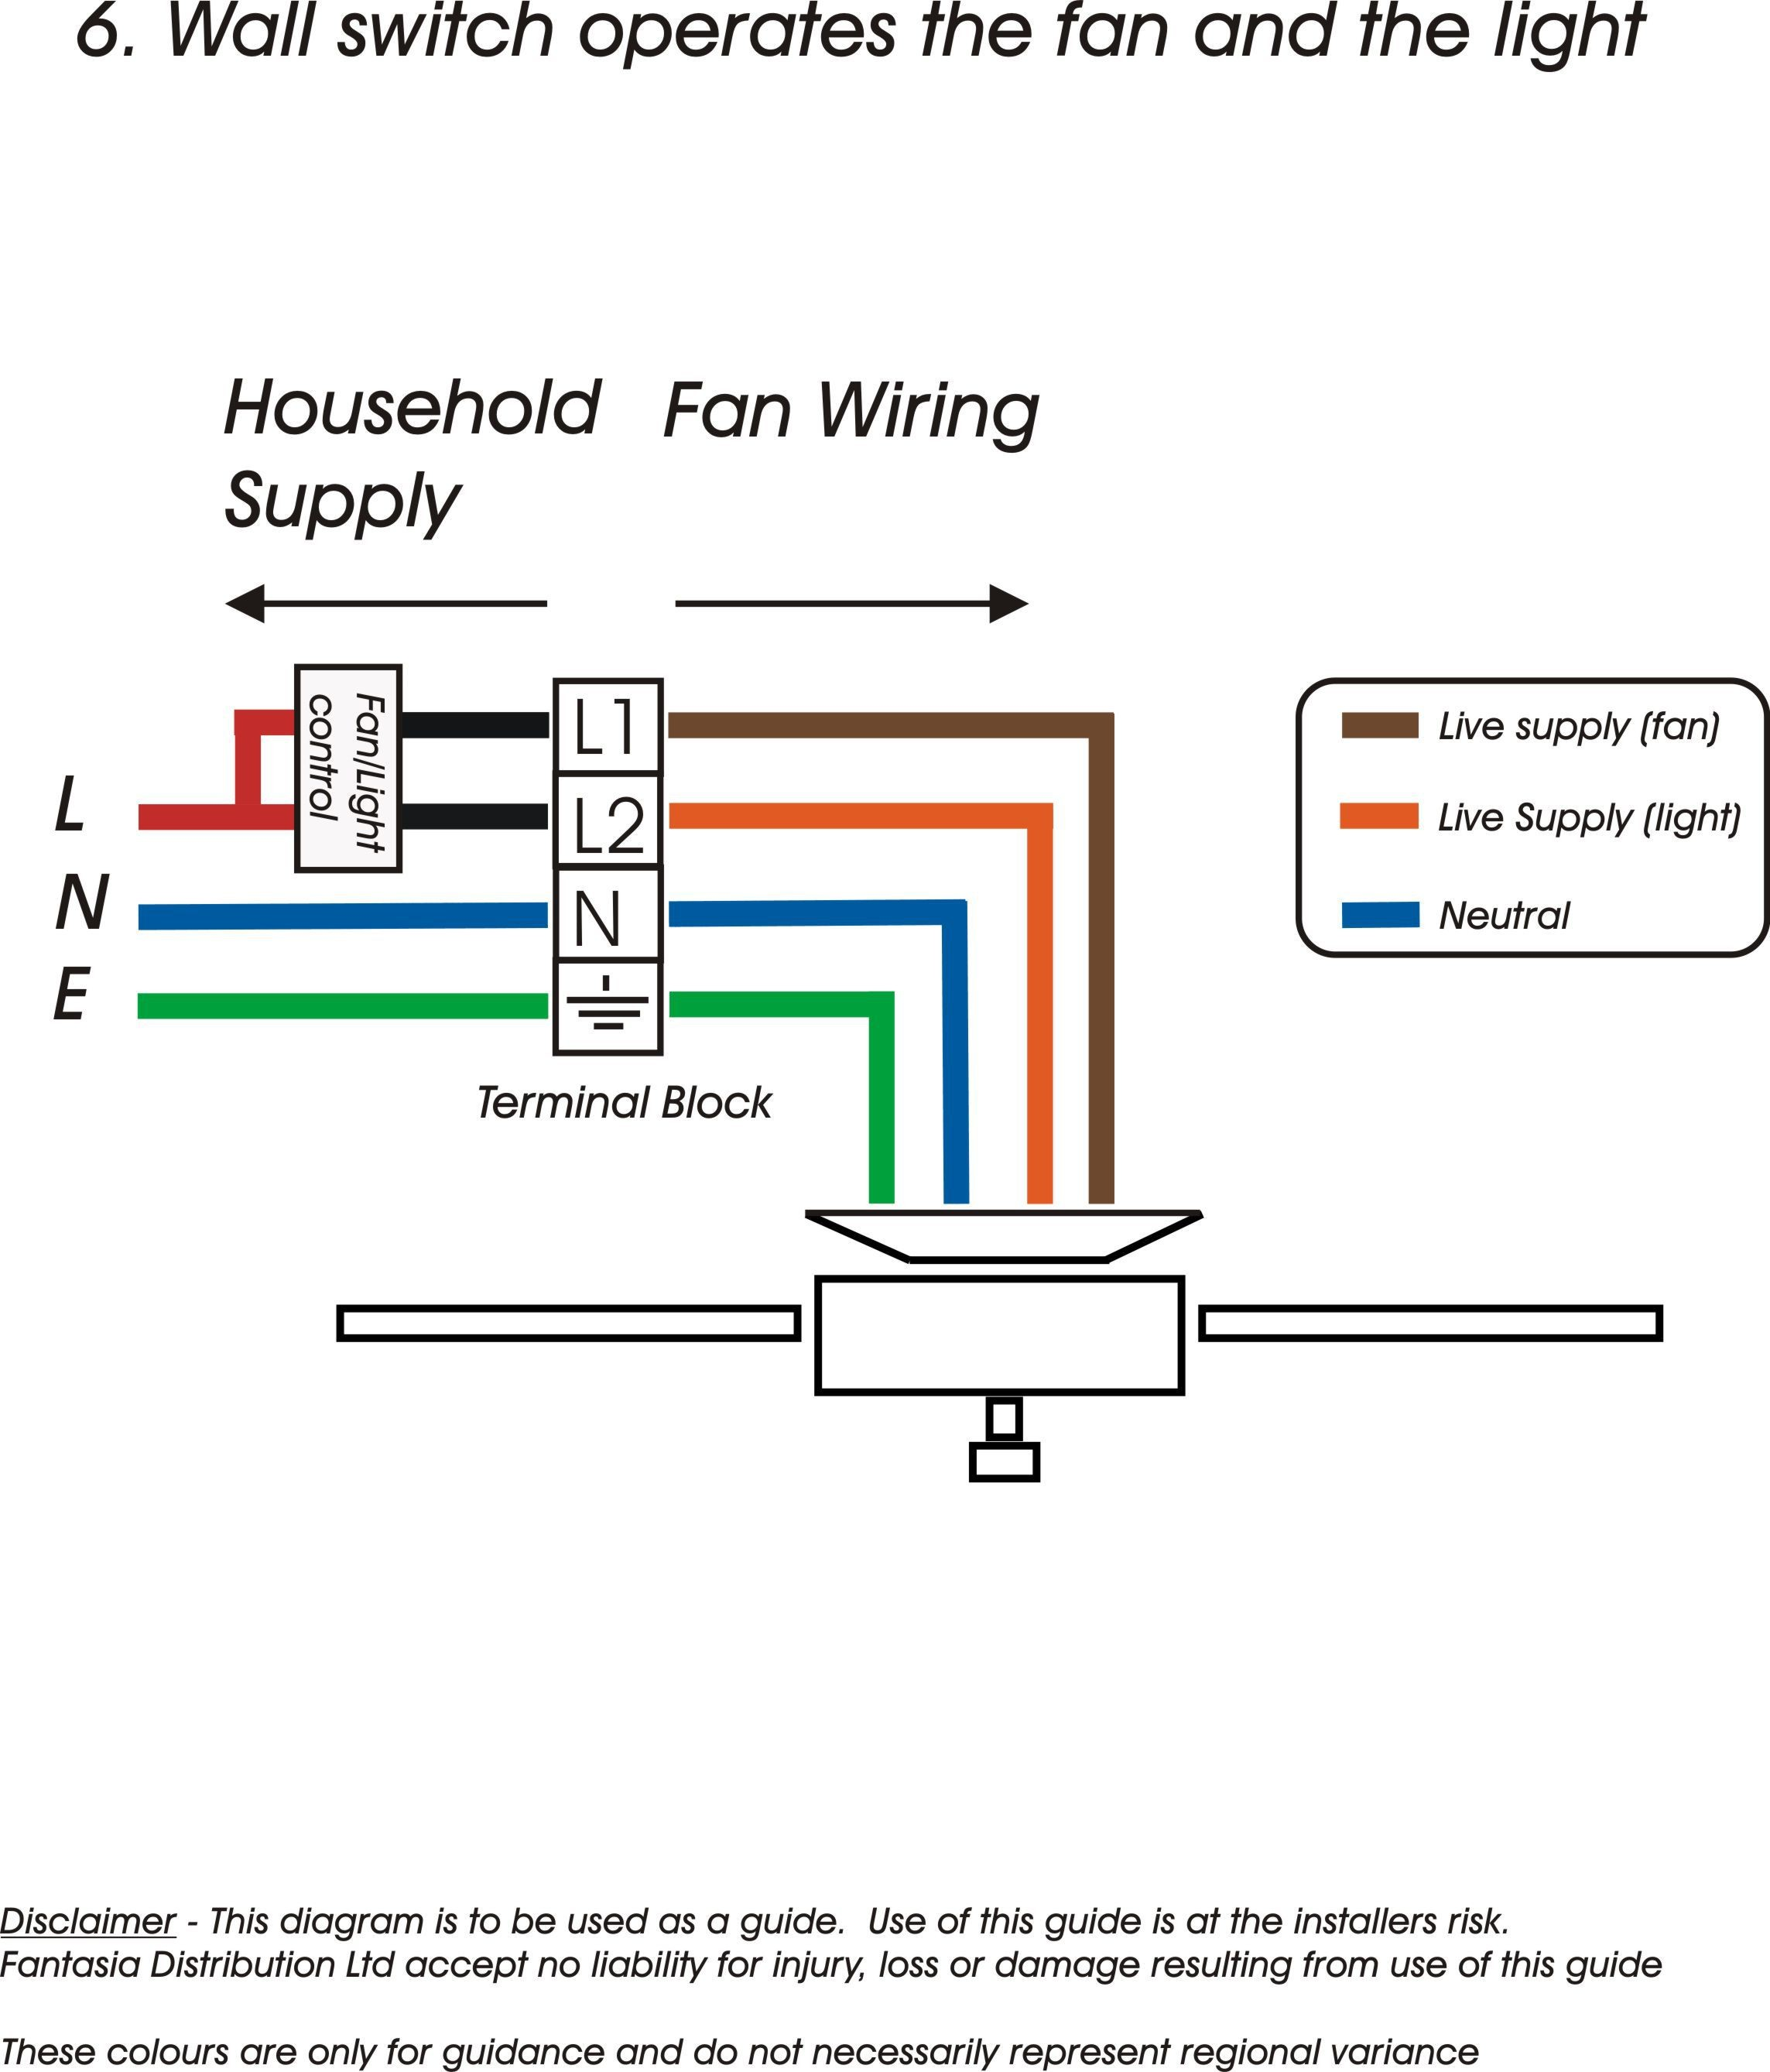 Self Contained Wall Switch Wiring Diagram Diagrams A Light And Gfci Outlet On Double Pole Beautiful Combo Photo The Combination Electrical For Dummies